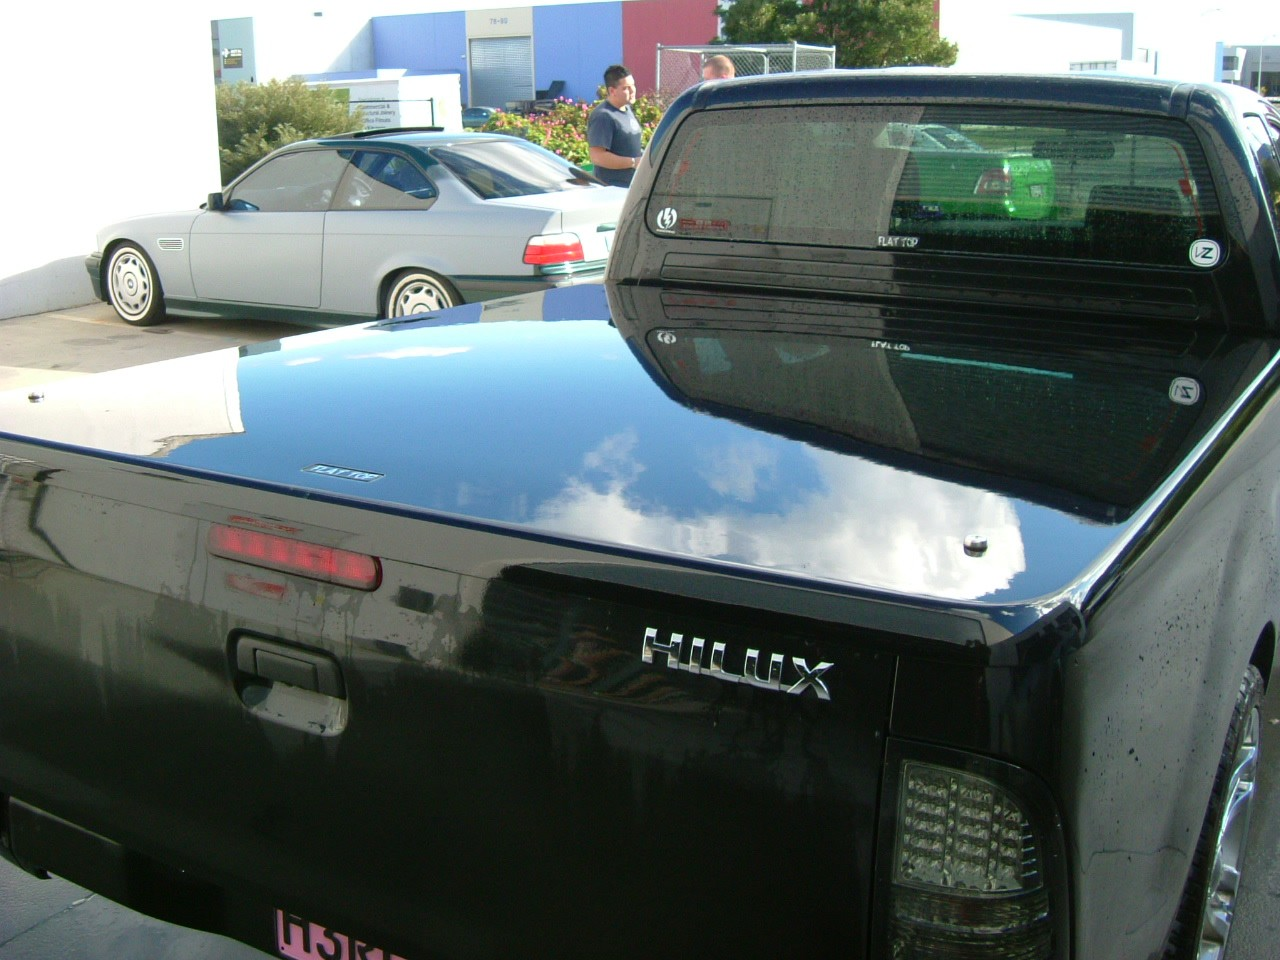 Toyota Hilux n70  + Dual Cab A Deck (No Bars) 2005- 2013 + Ute Lid +1 Pce Manual PAINTED